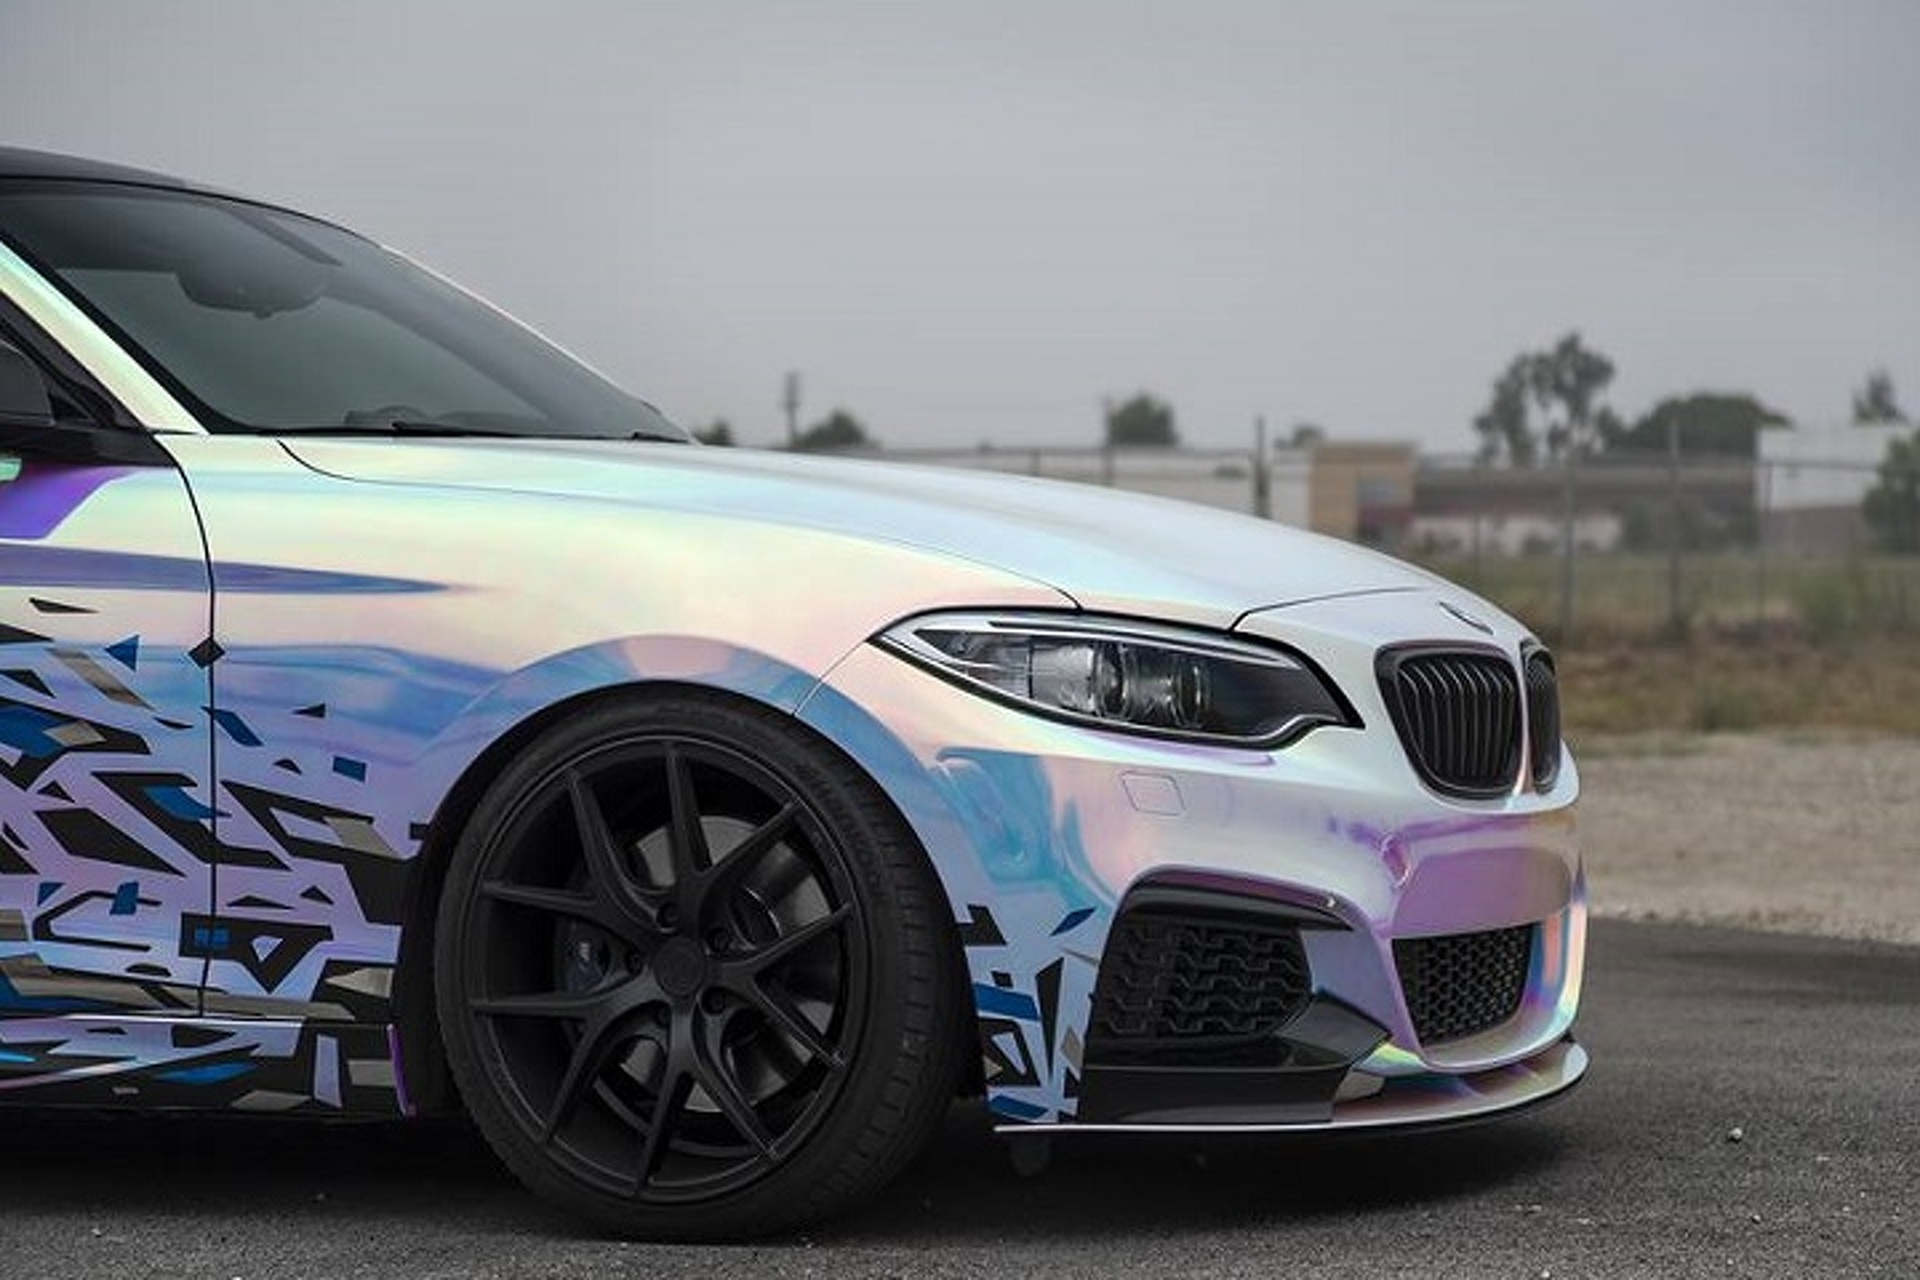 BMW M235i Gets Wild With A Rainbow Wrap